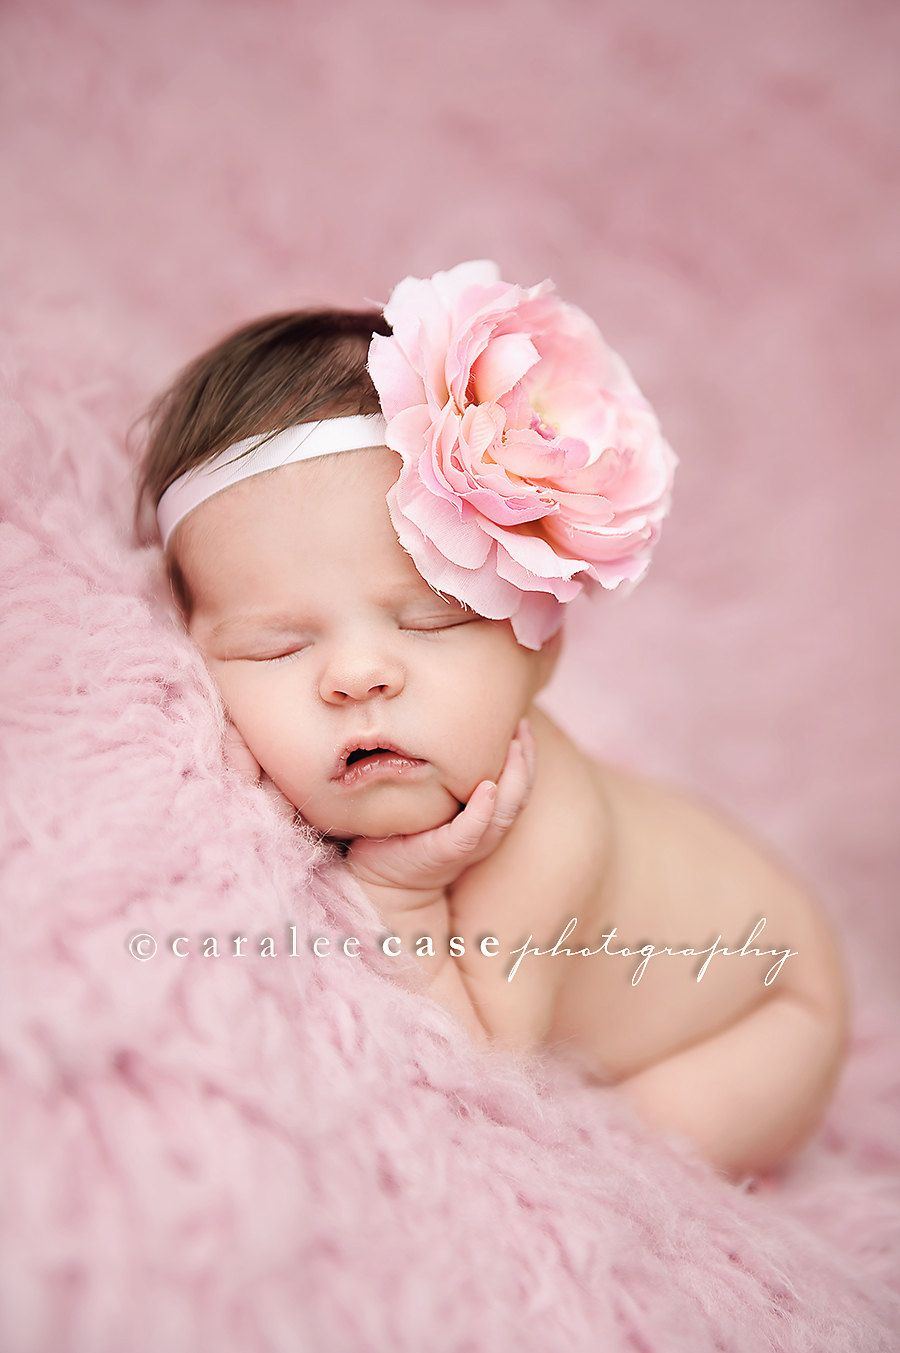 Baby headband baby girl flower headband newborn photography prop baby hair accessories 12 95 via etsy